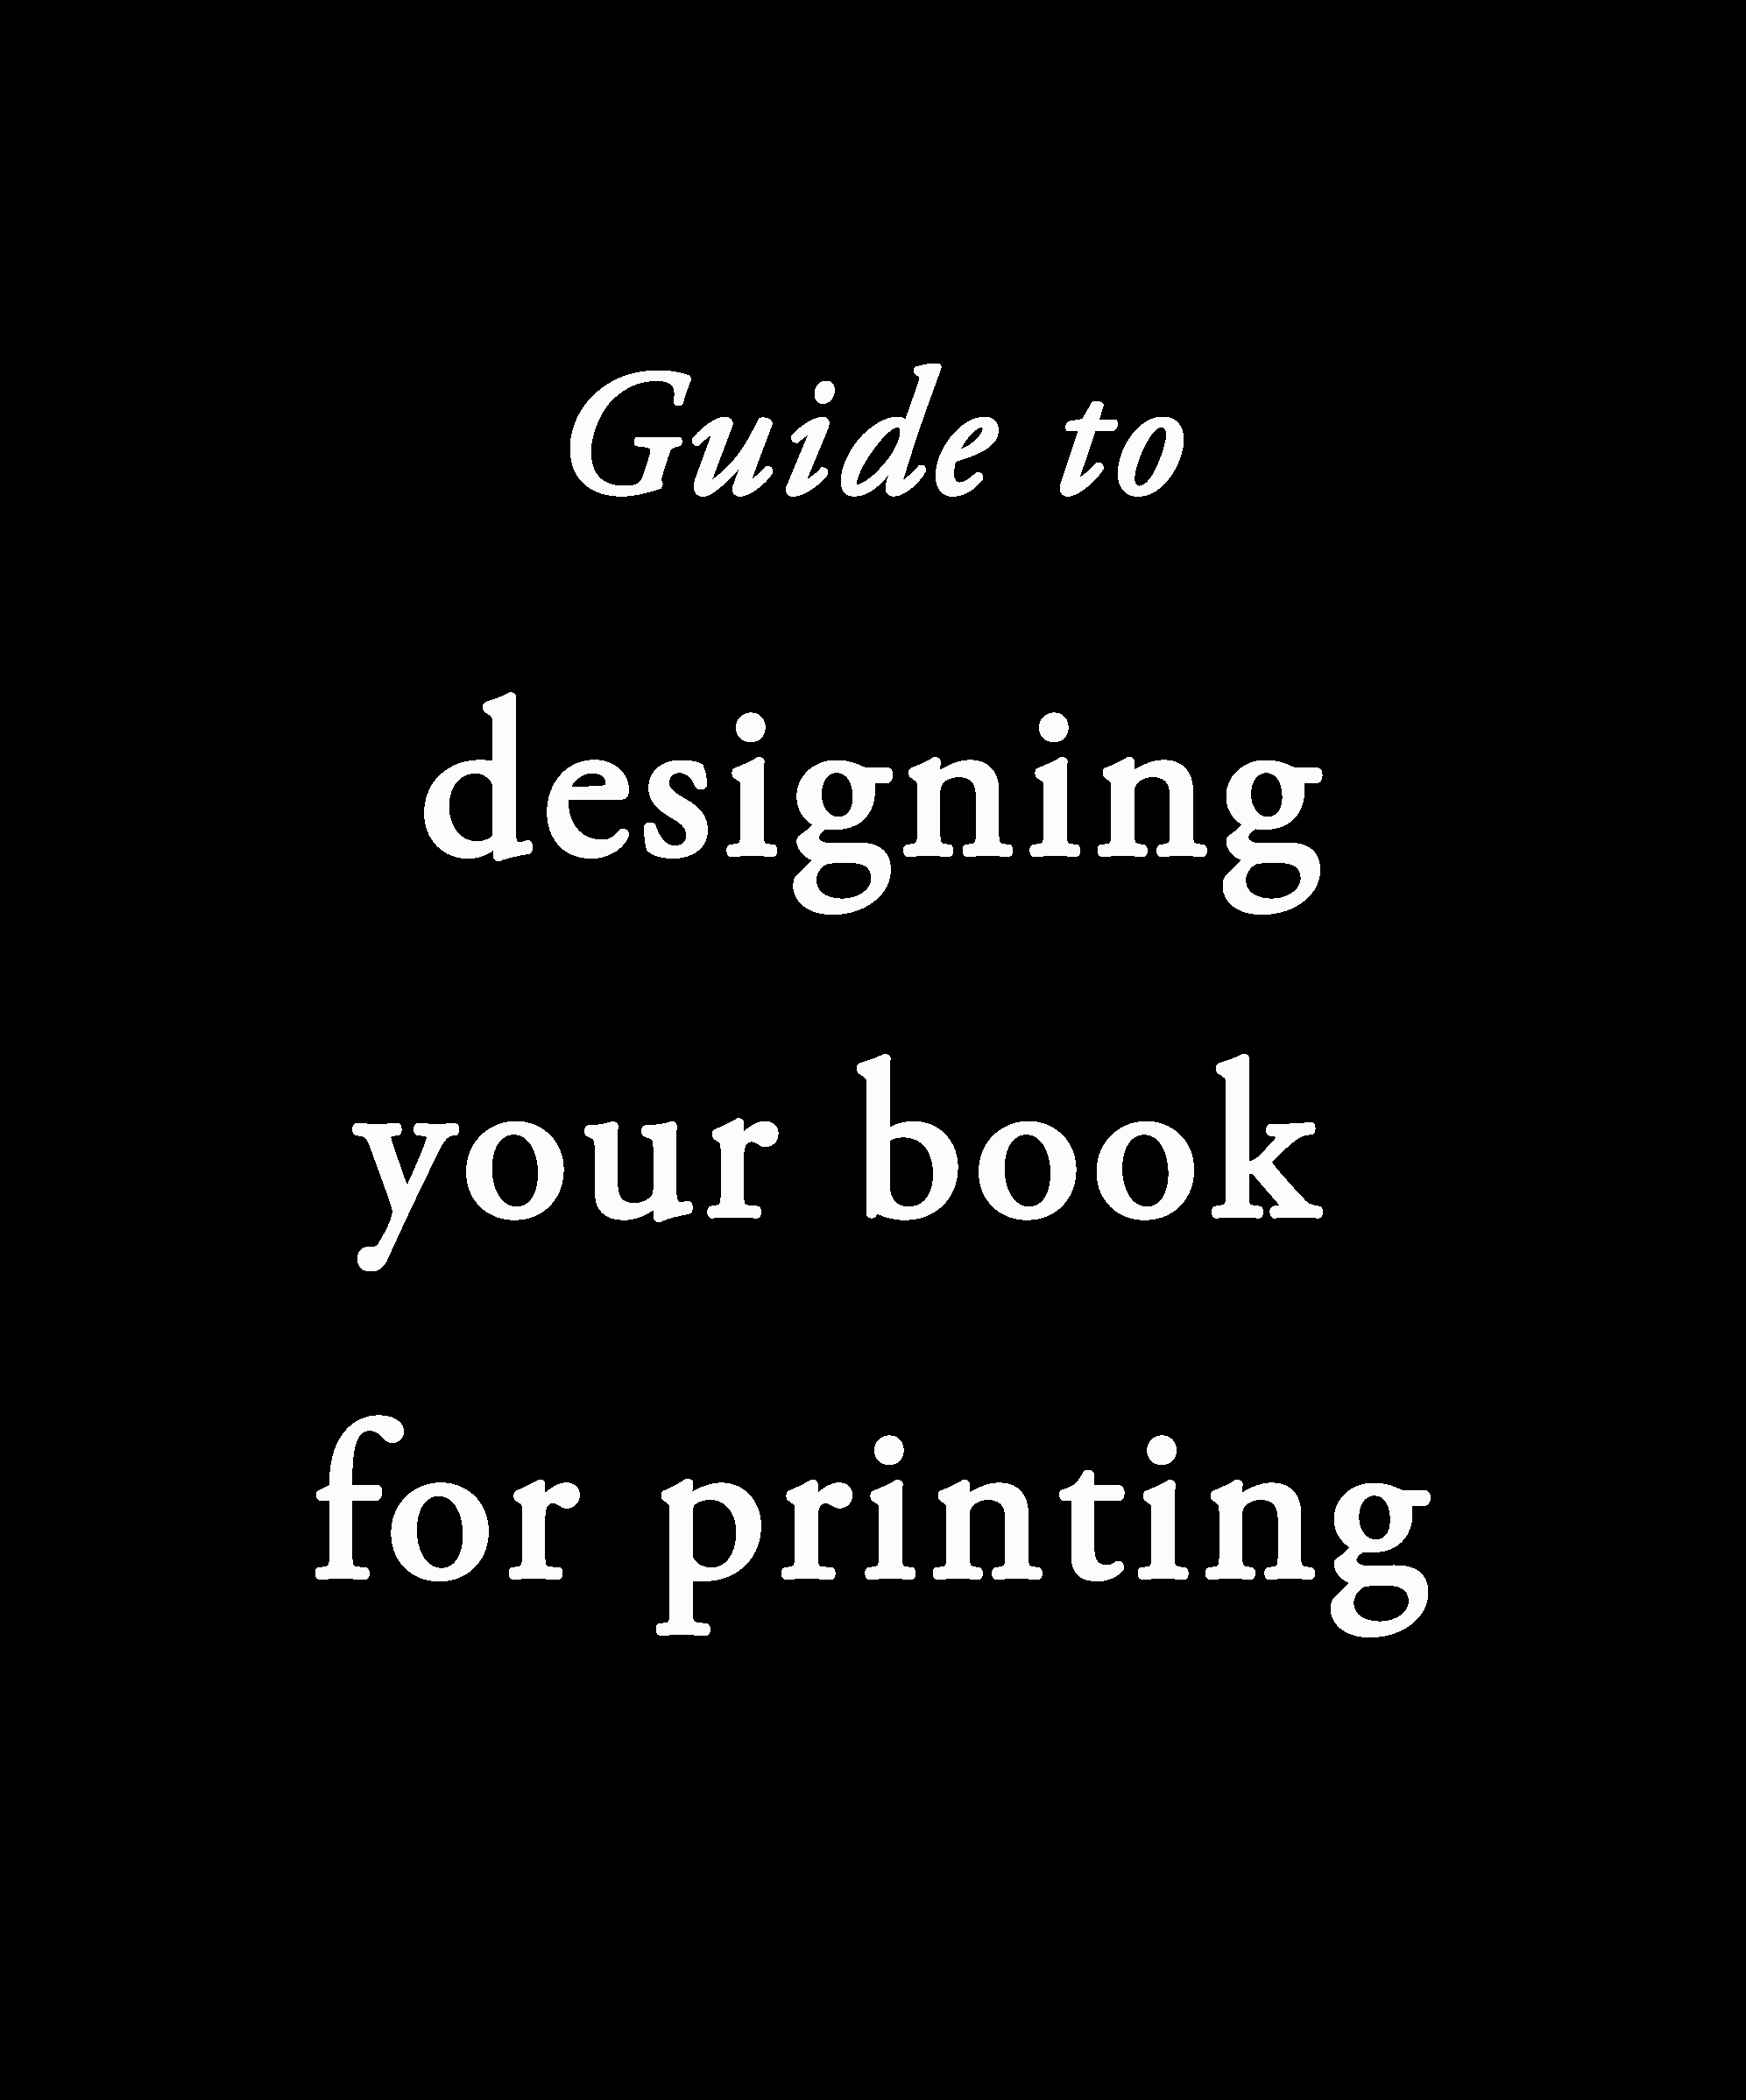 design book for printing.jpg